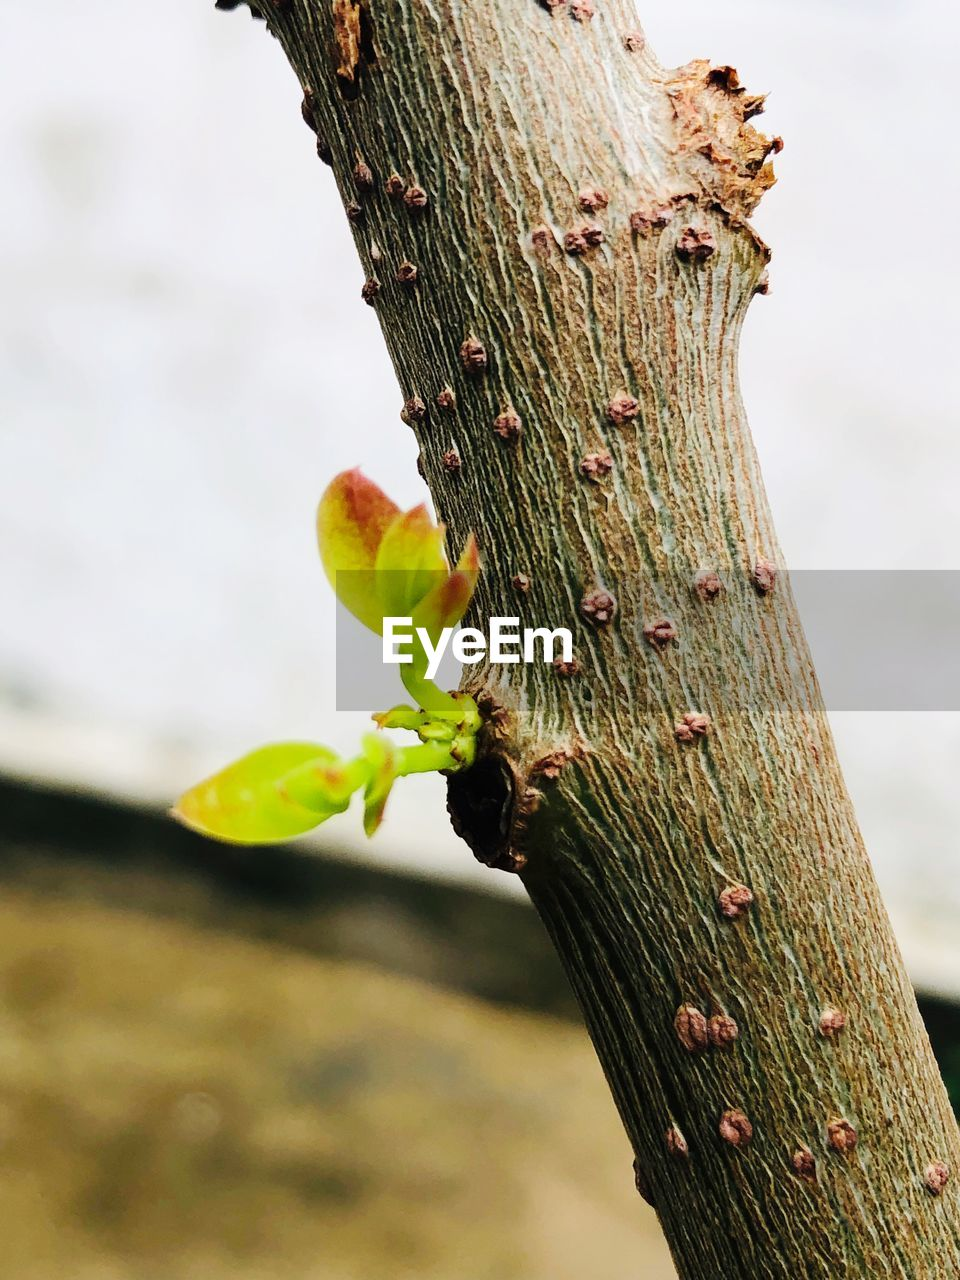 plant, focus on foreground, growth, trunk, tree trunk, nature, close-up, tree, day, no people, wood - material, outdoors, textured, green color, beauty in nature, tranquility, animals in the wild, vulnerability, animal, fragility, bark